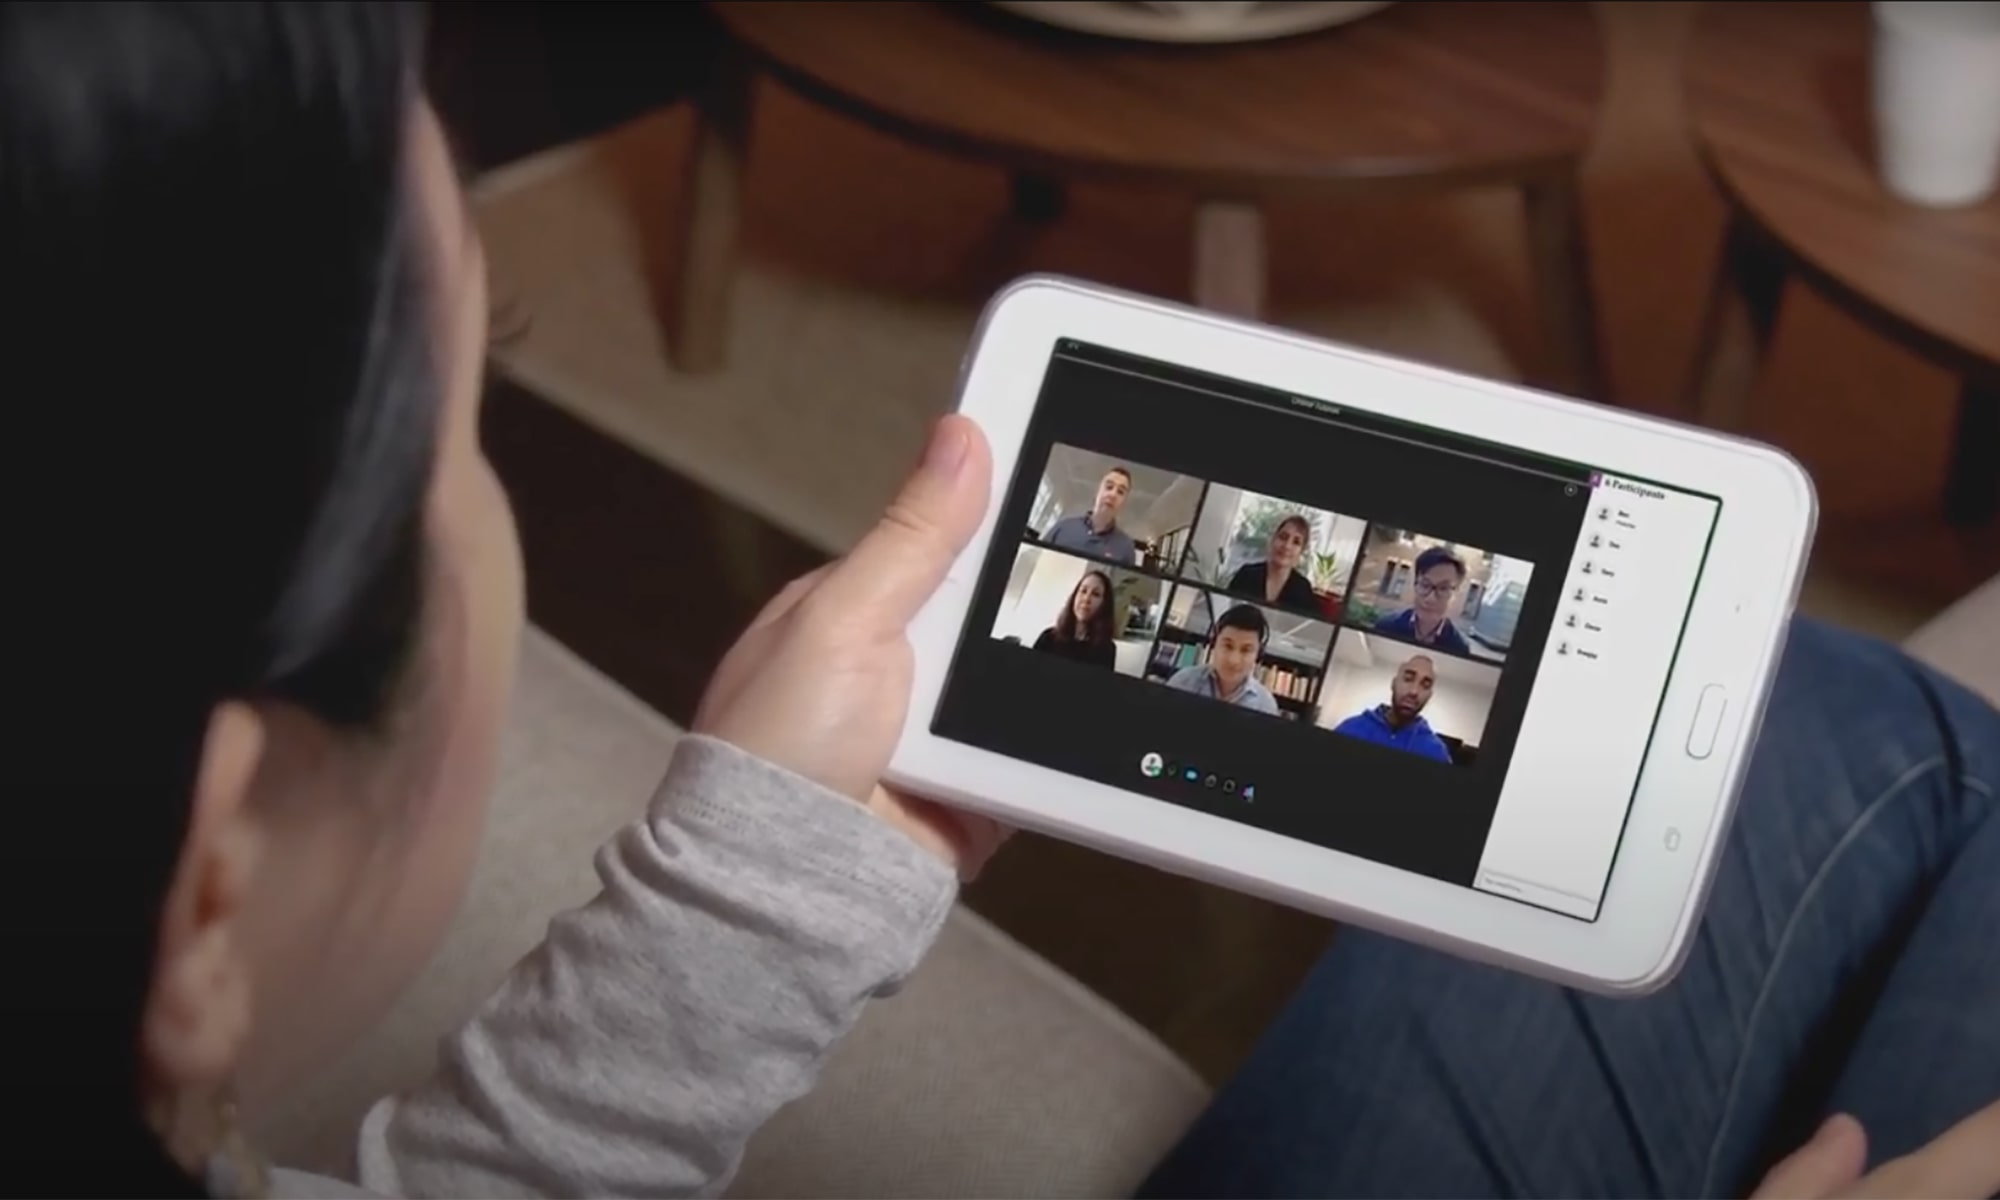 Watching an online meeting on a tablet